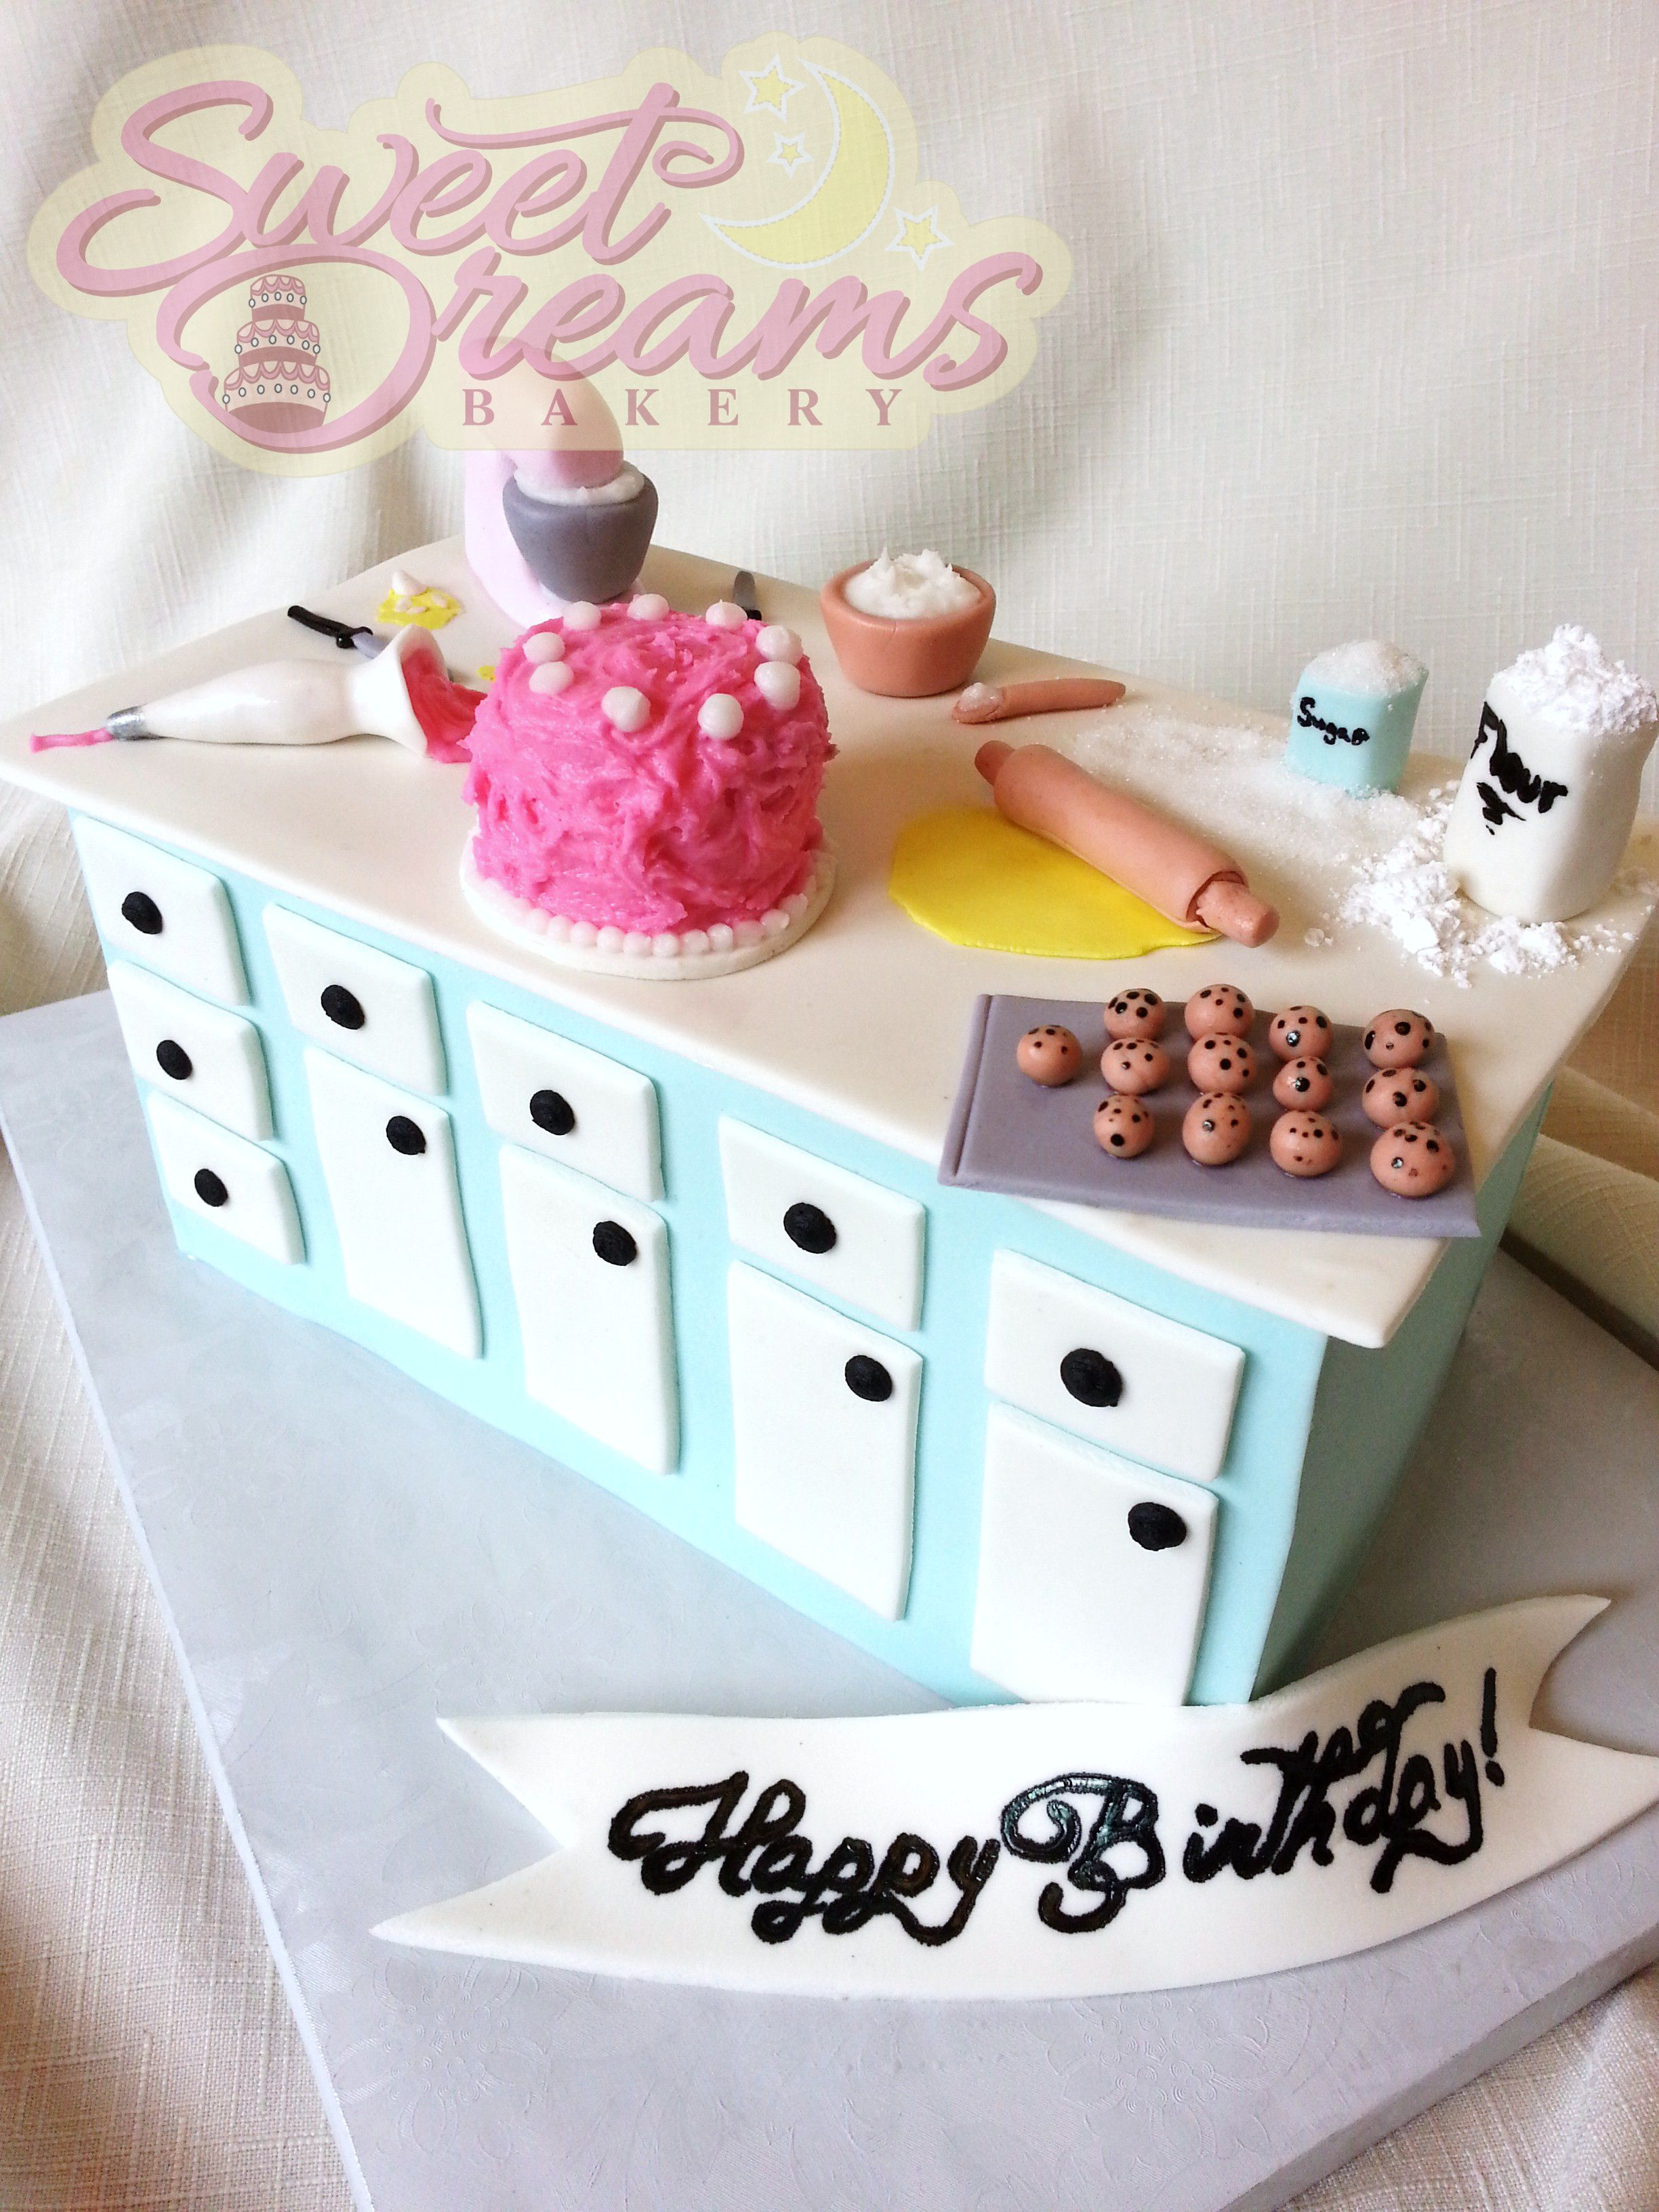 A Bakers Themed Birthday Cake Made For Myself From Sweet